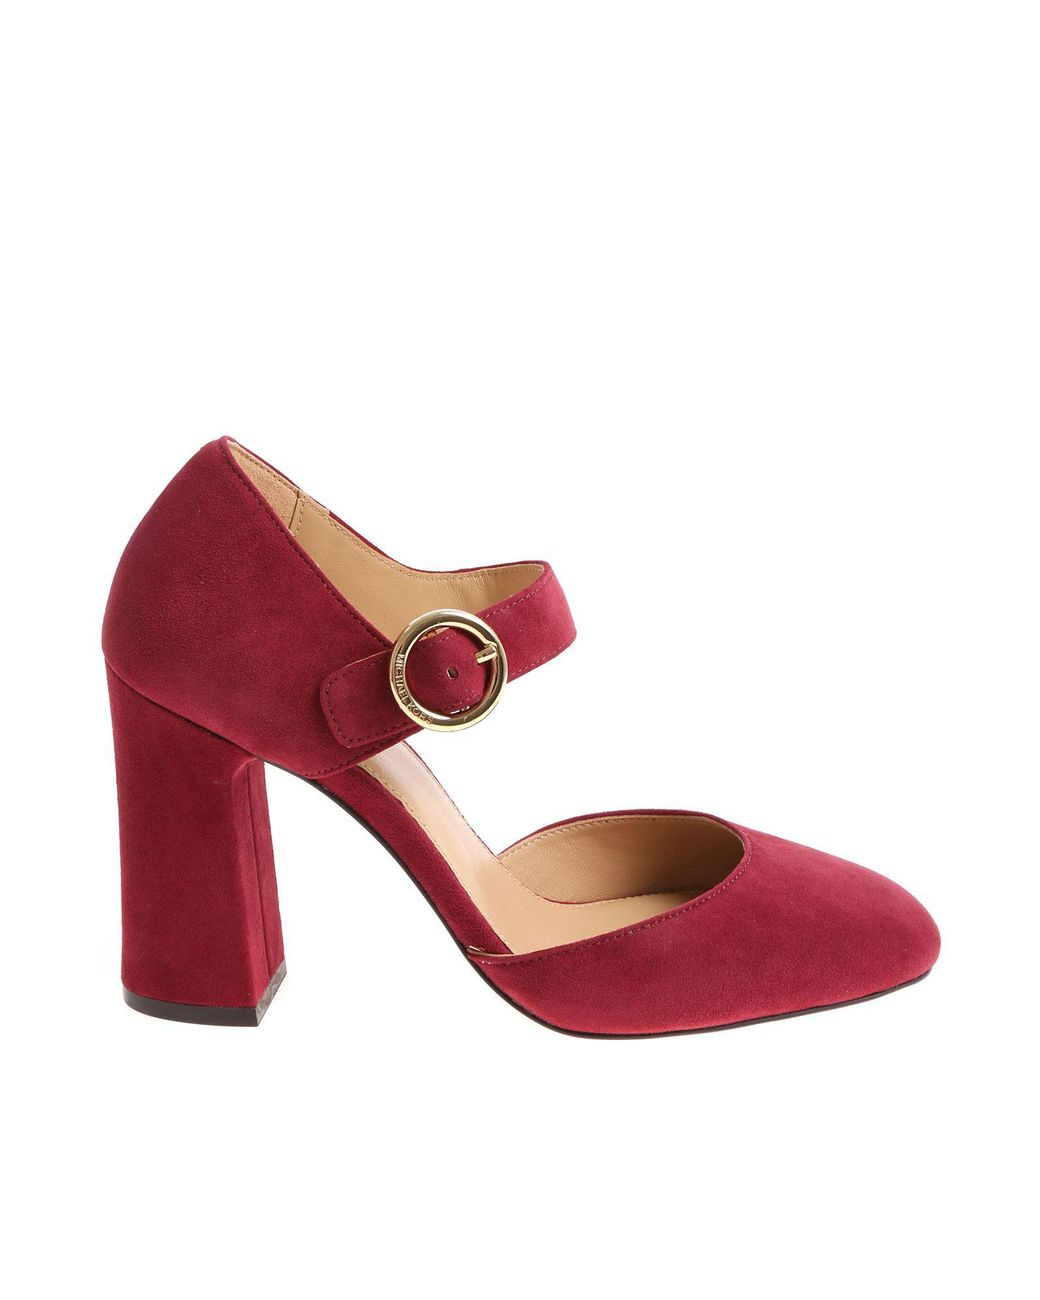 47e585990bfe4 Michael Kors Burgundy Alana Pumps in Red - Lyst